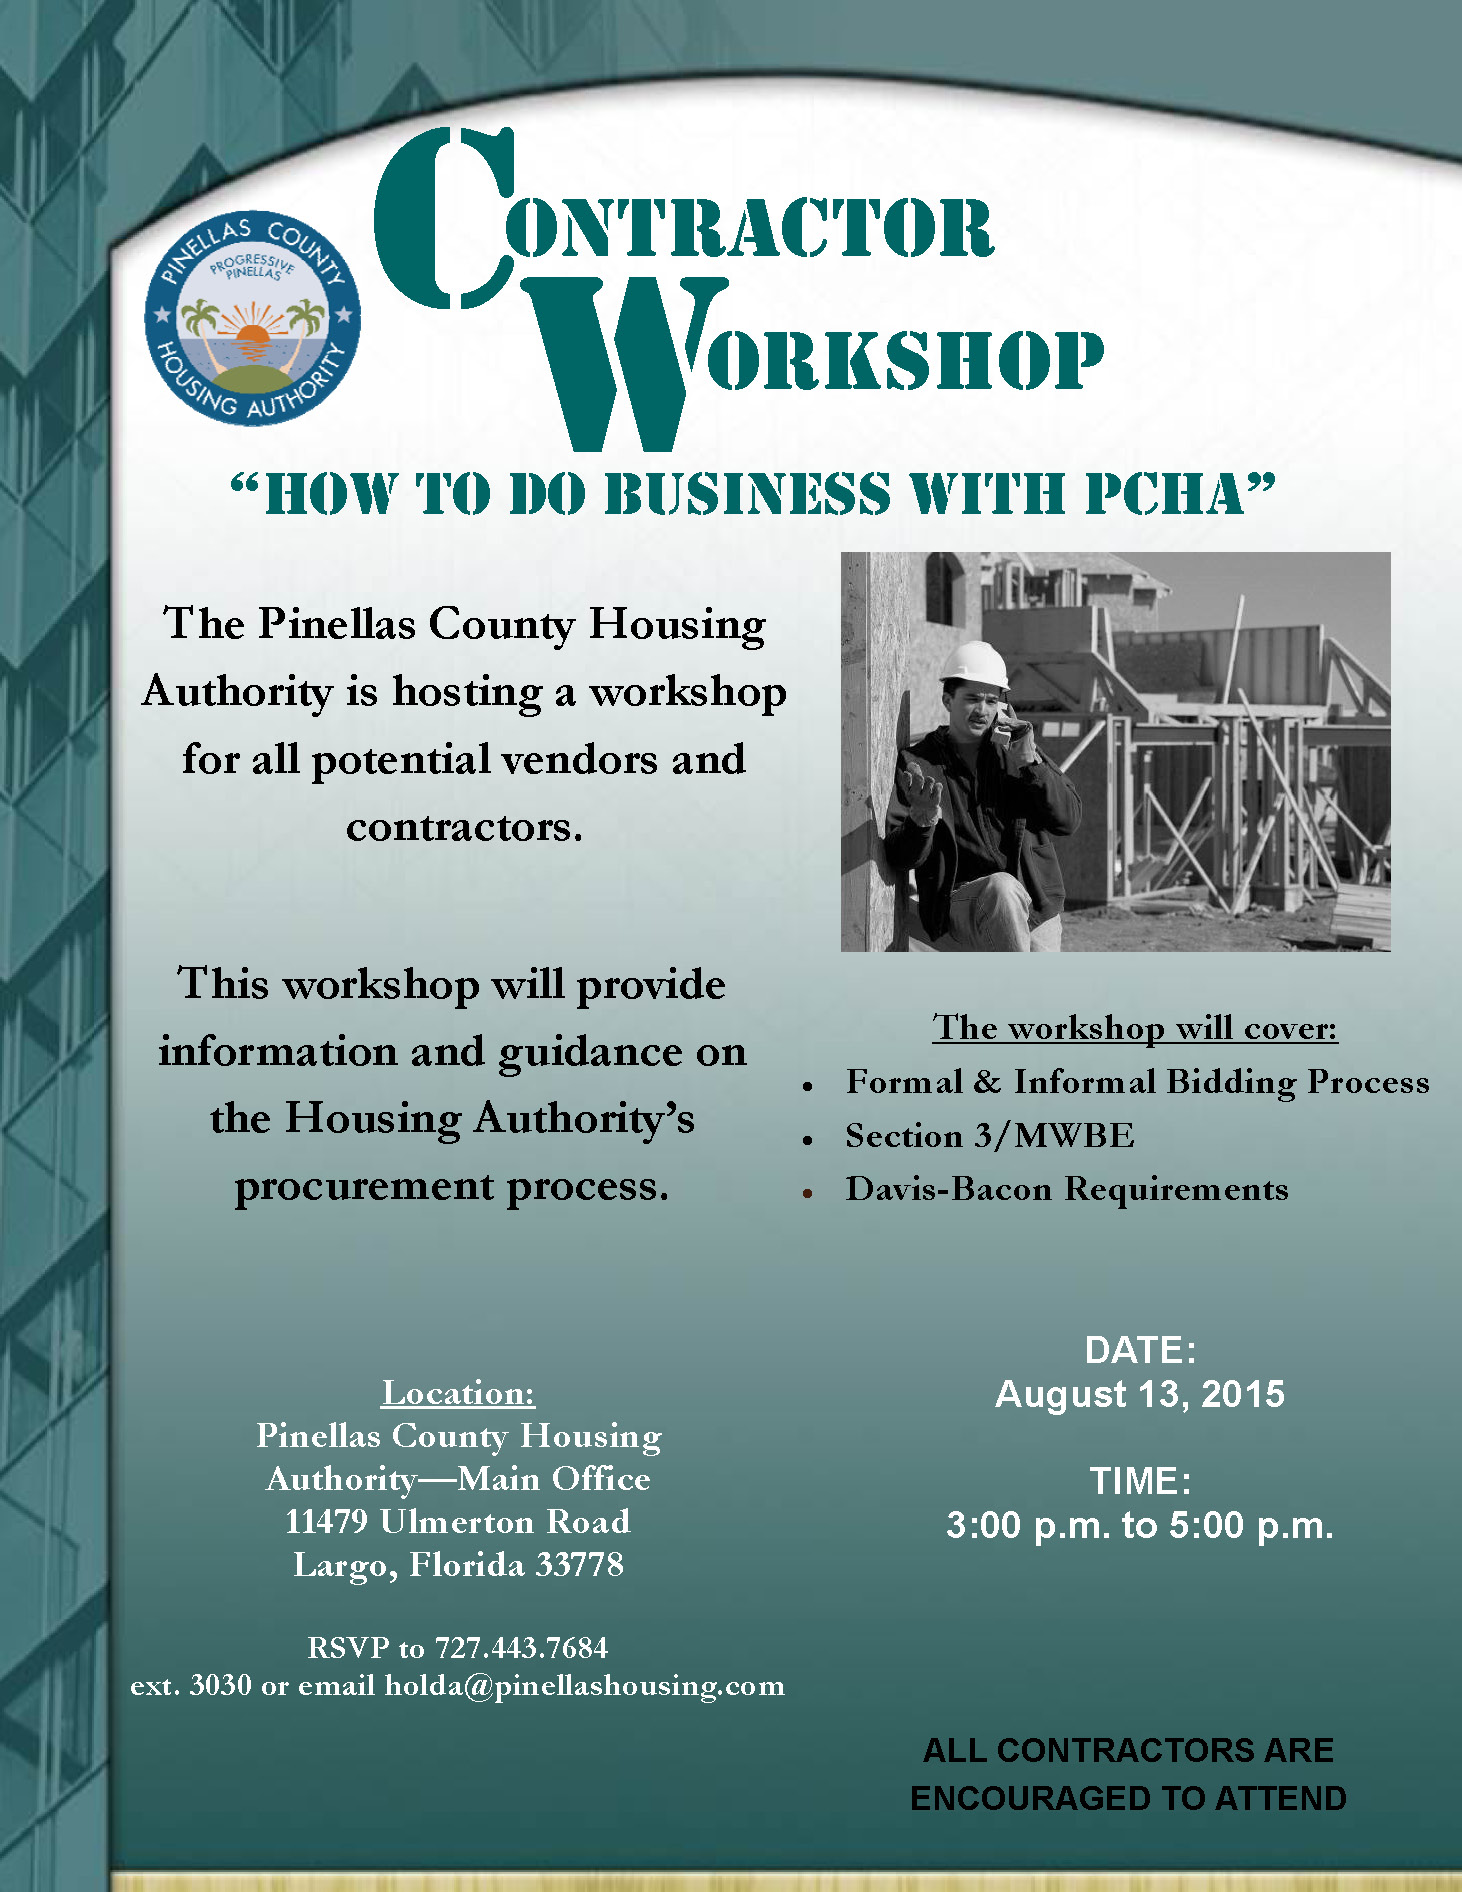 Contractor workshop  8.13.15